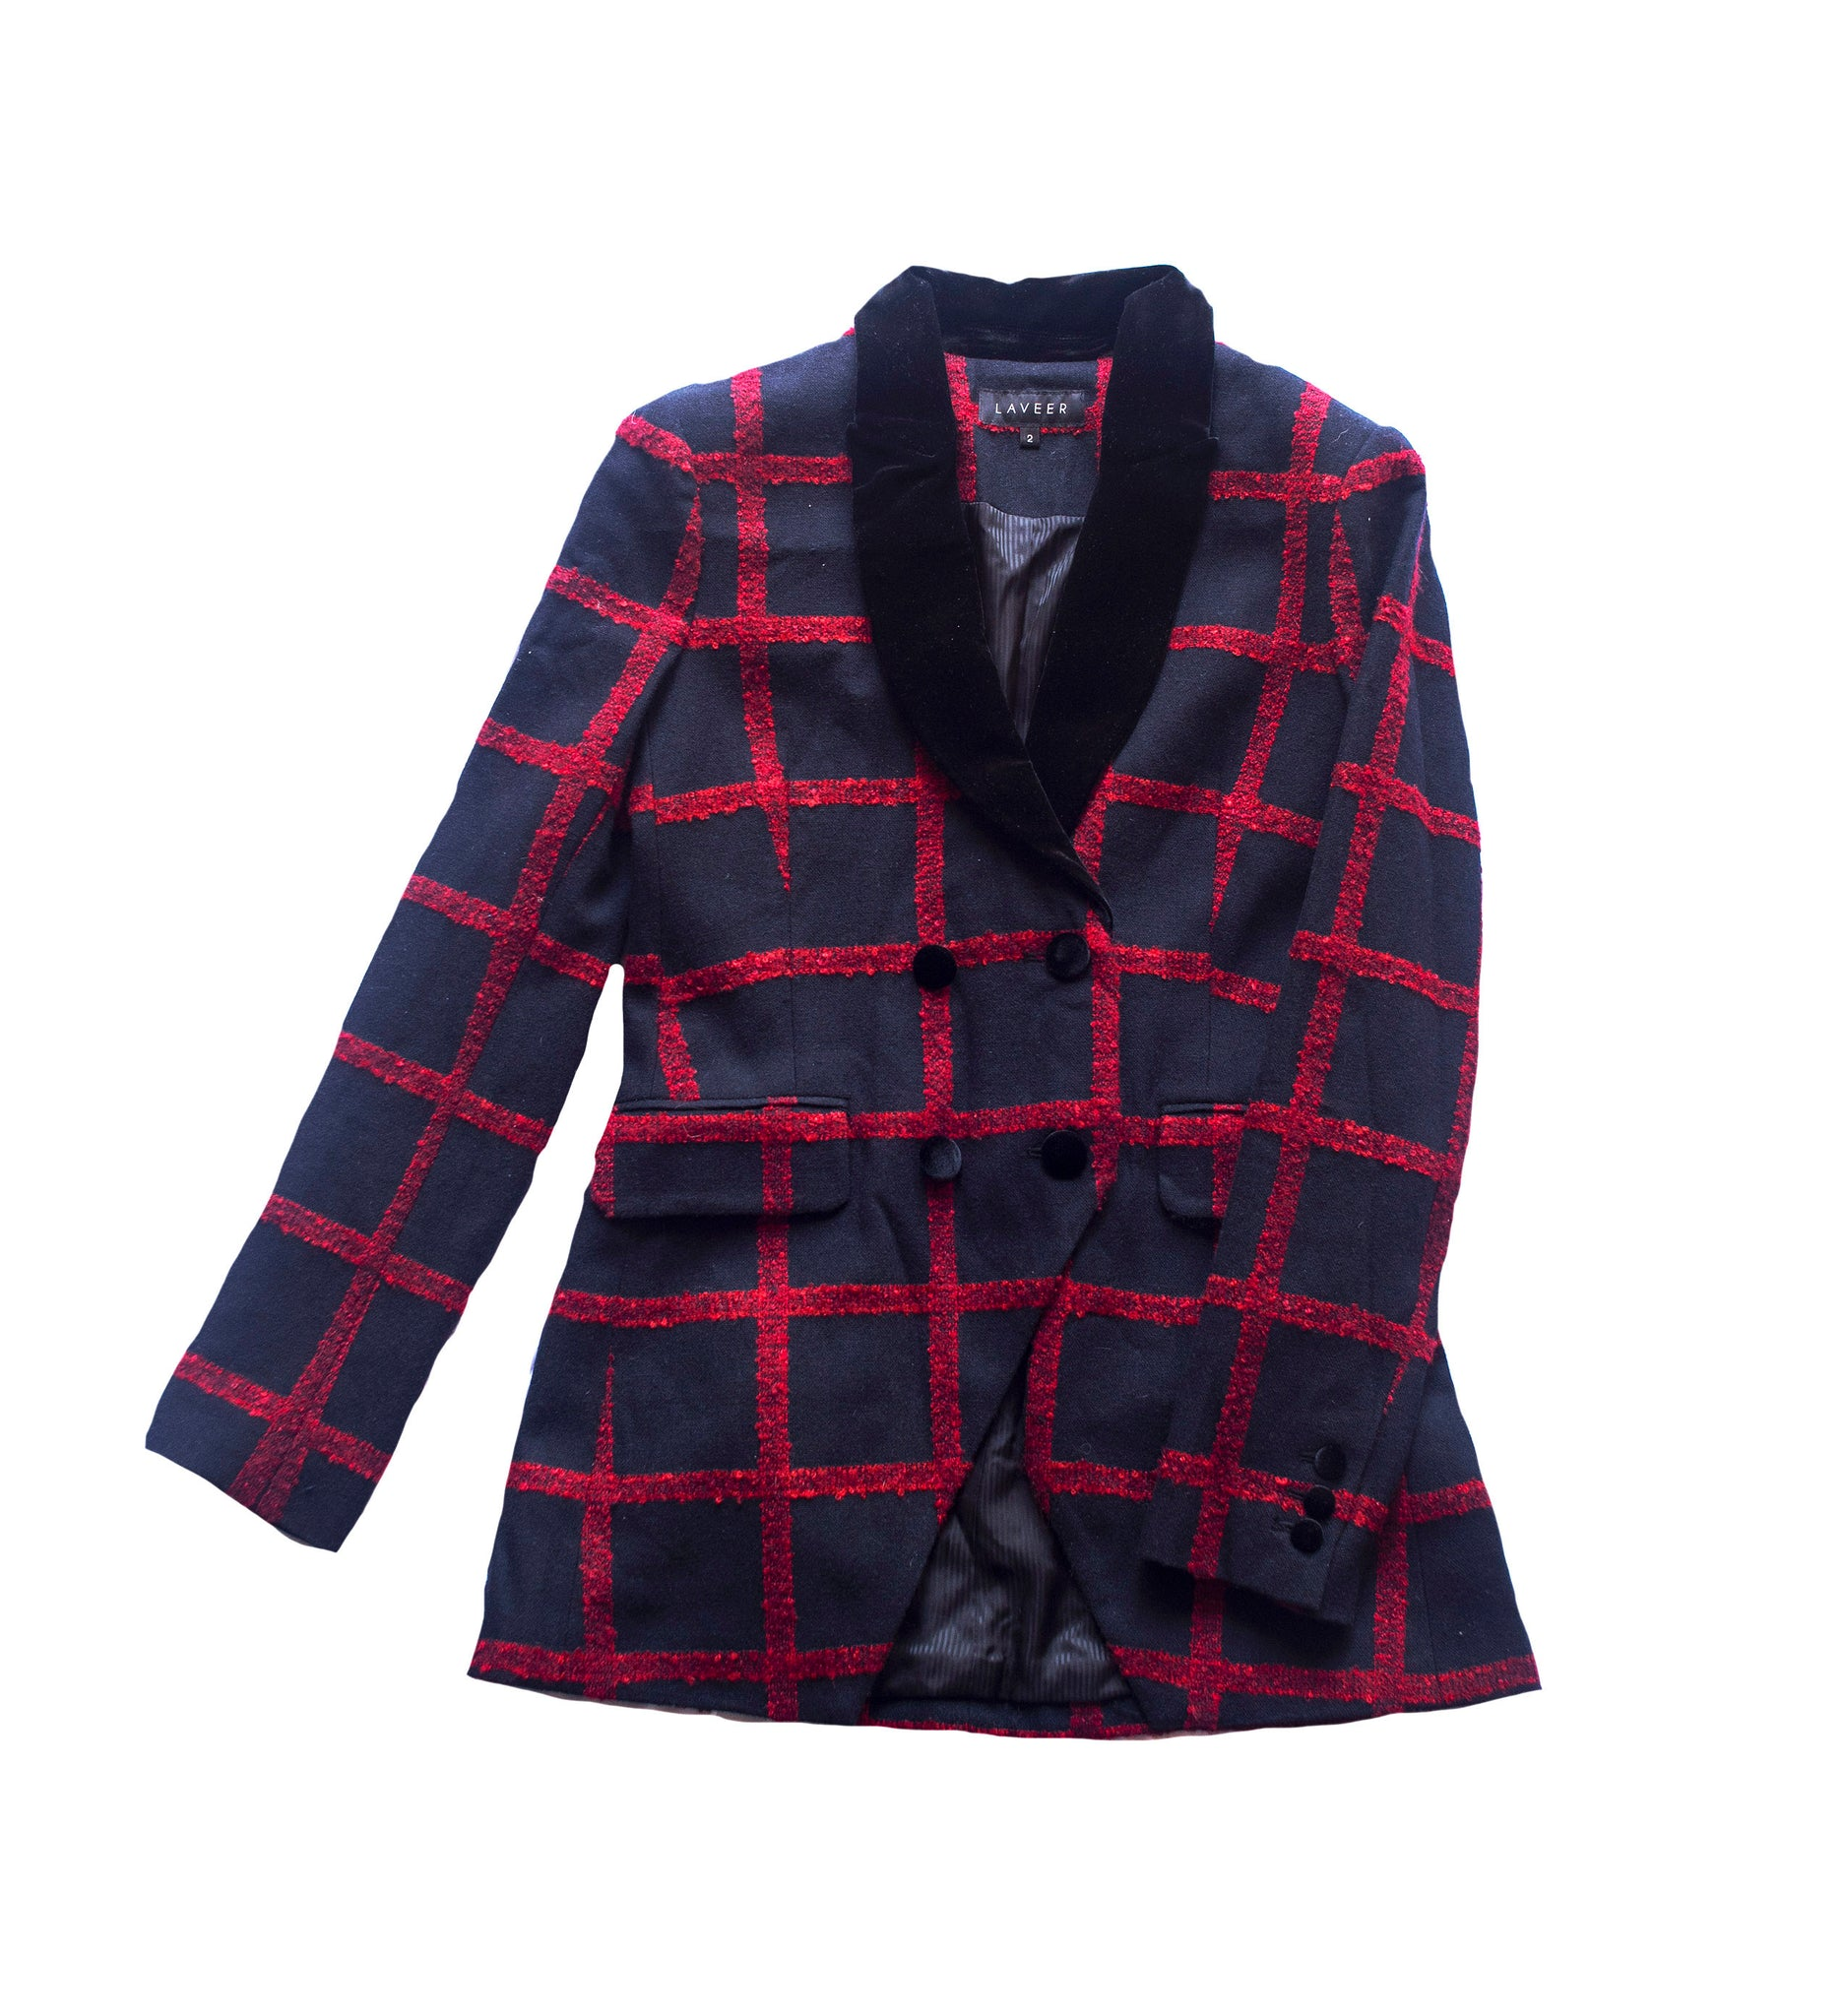 LAVEER LONG KADETTE BLAZER IN NAVY & RED CHECK